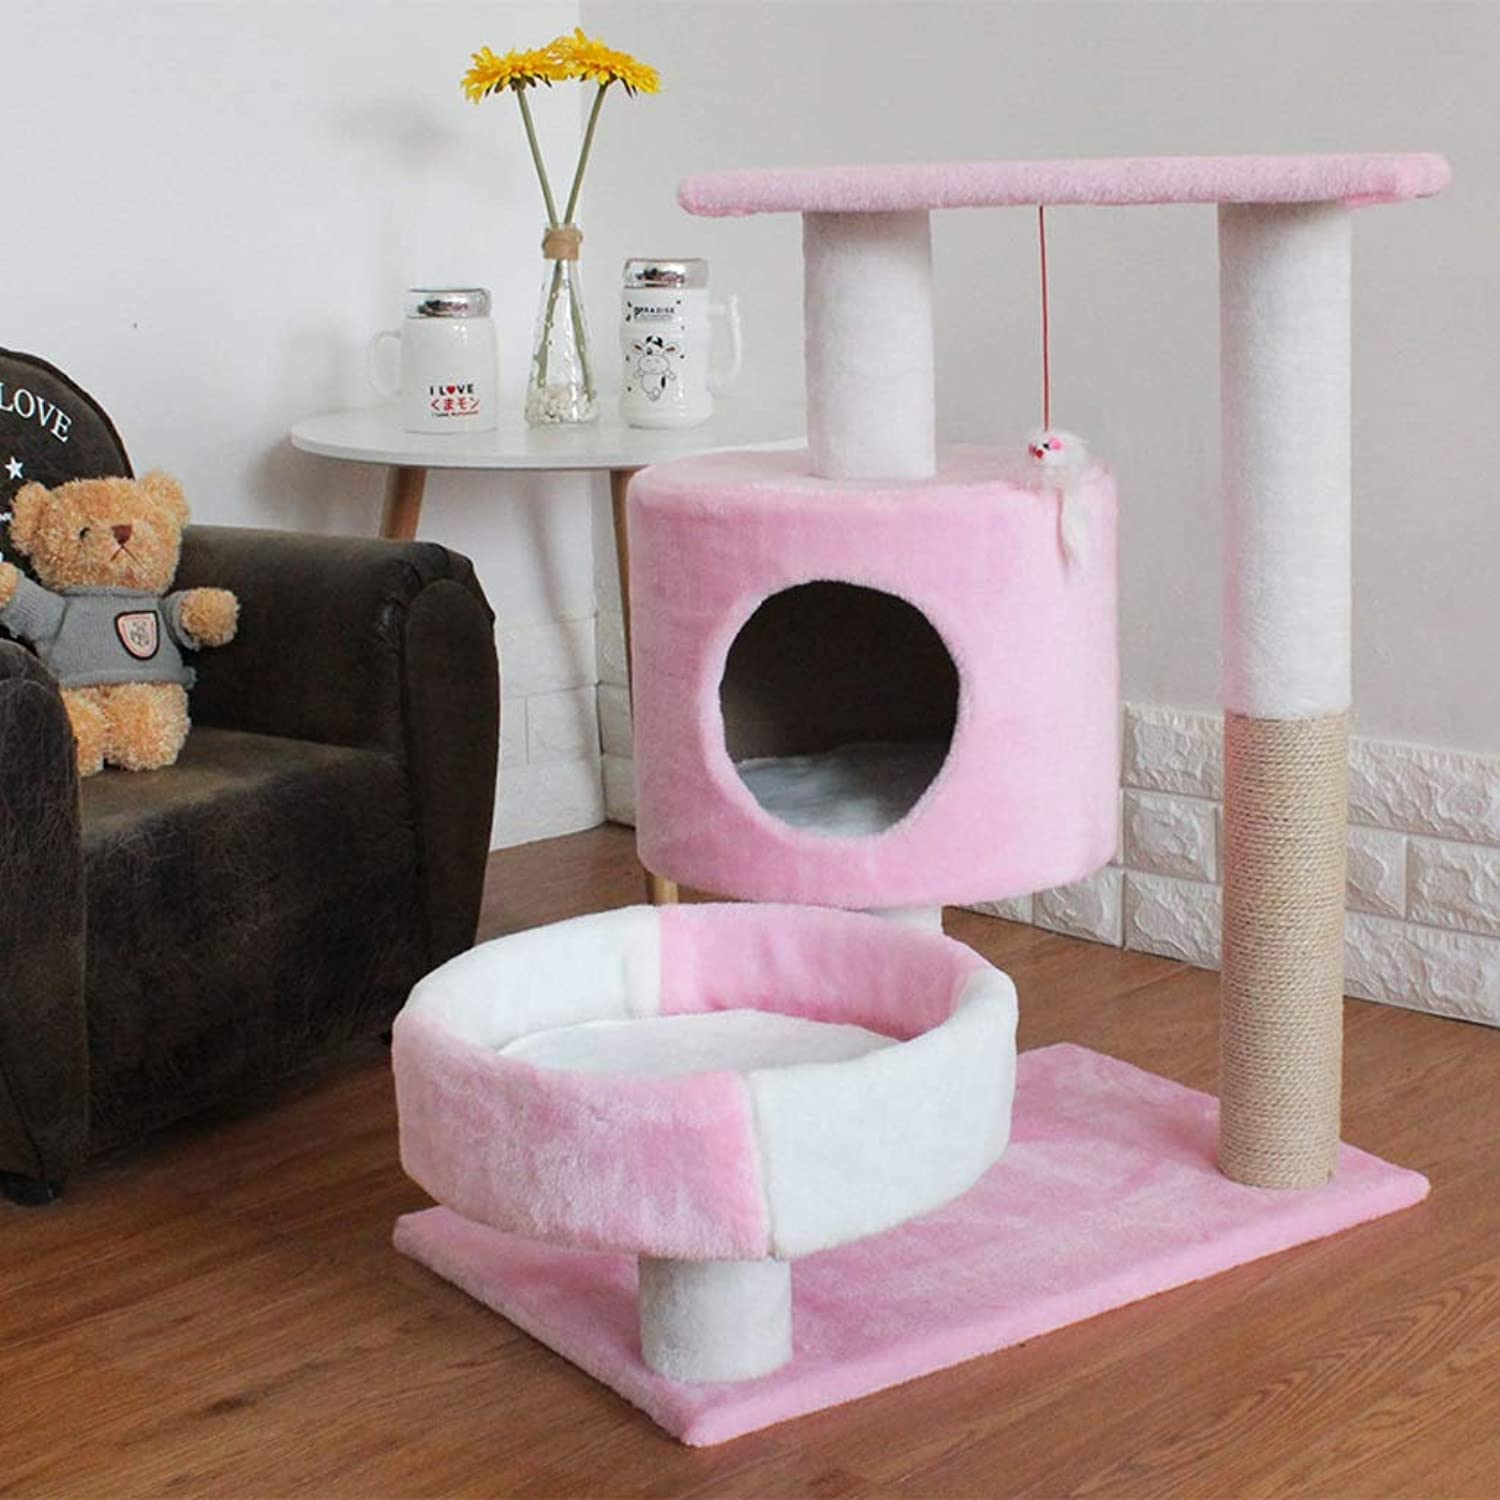 HQQ Pet Bed Cat Climbing Frame Four Seasons Universal Dog House Cat Litter Toy Sisal Jumping Platform (color   PINK)